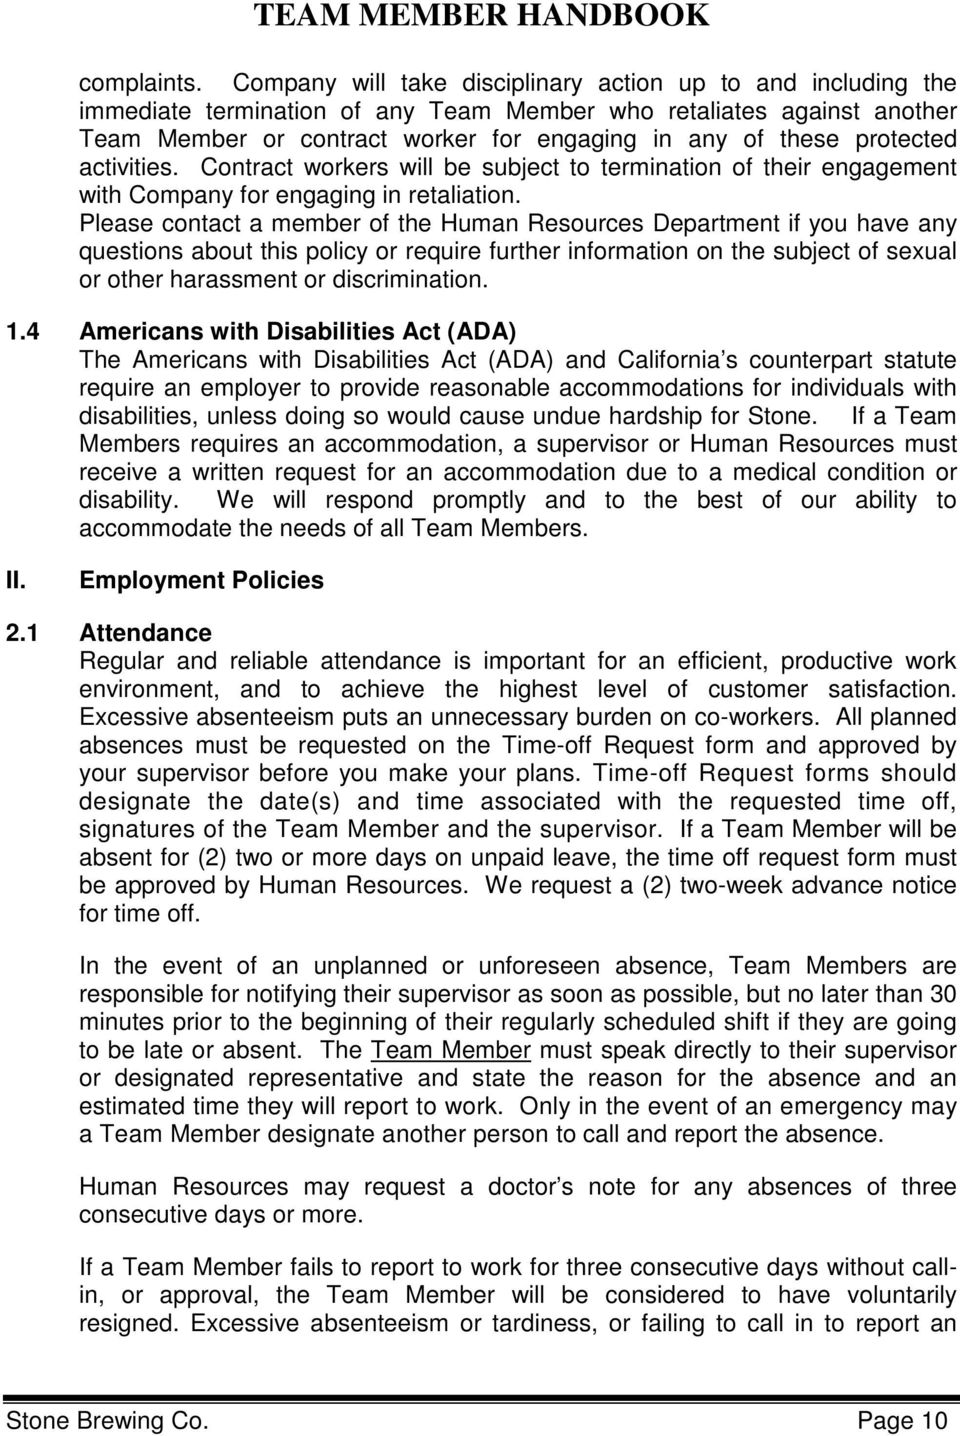 protected activities. Contract workers will be subject to termination of  their engagement with Company for